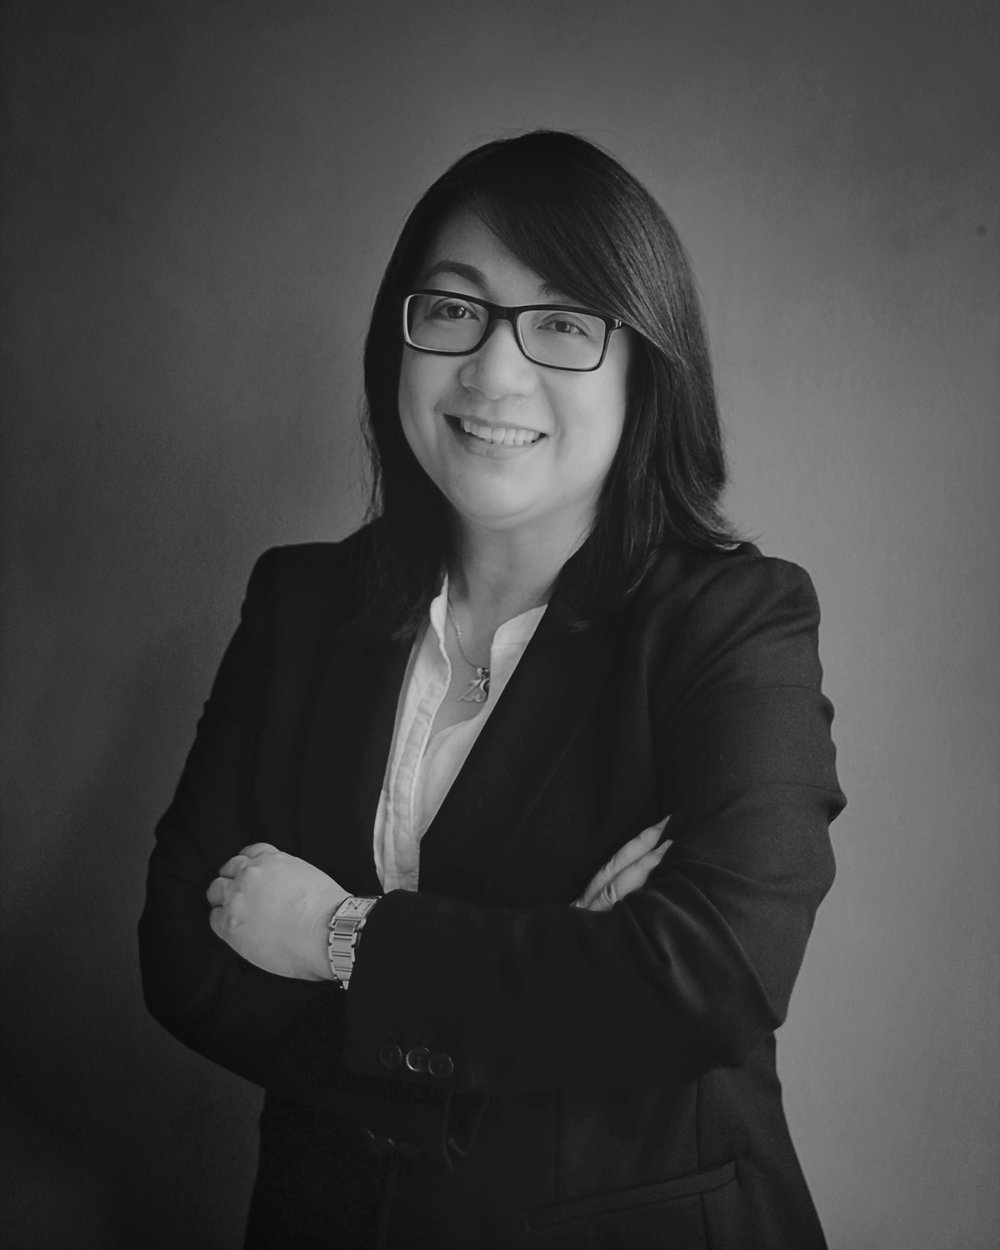 Lachmi Baviera , Program Head   Music Business Management   Former Warner Music Philippines General Manager, Lachmi Baviera is the newly installed program head for the Music Business Management program.   She will continue the legacy of the late Eugene Villauz, founder of the MBM program, who passed away in 2017. Previously, Lachmi was at the helm of Warner Music Philippines, leading the record label into the digital age by transforming it from a traditional music label into a digital entertainment company. She brings her professional experience from the music business world to academia. She has made it her personal mission to uplift the Philippine music scene by providing more and more opportunities for independent artists to showcase their talent to a global market. Lachmi was also on the board of the Philippine Assoc. for the Recording Industry (PARI). She received her bachelor's degree in Marketing from St. Paul's College, Manila.